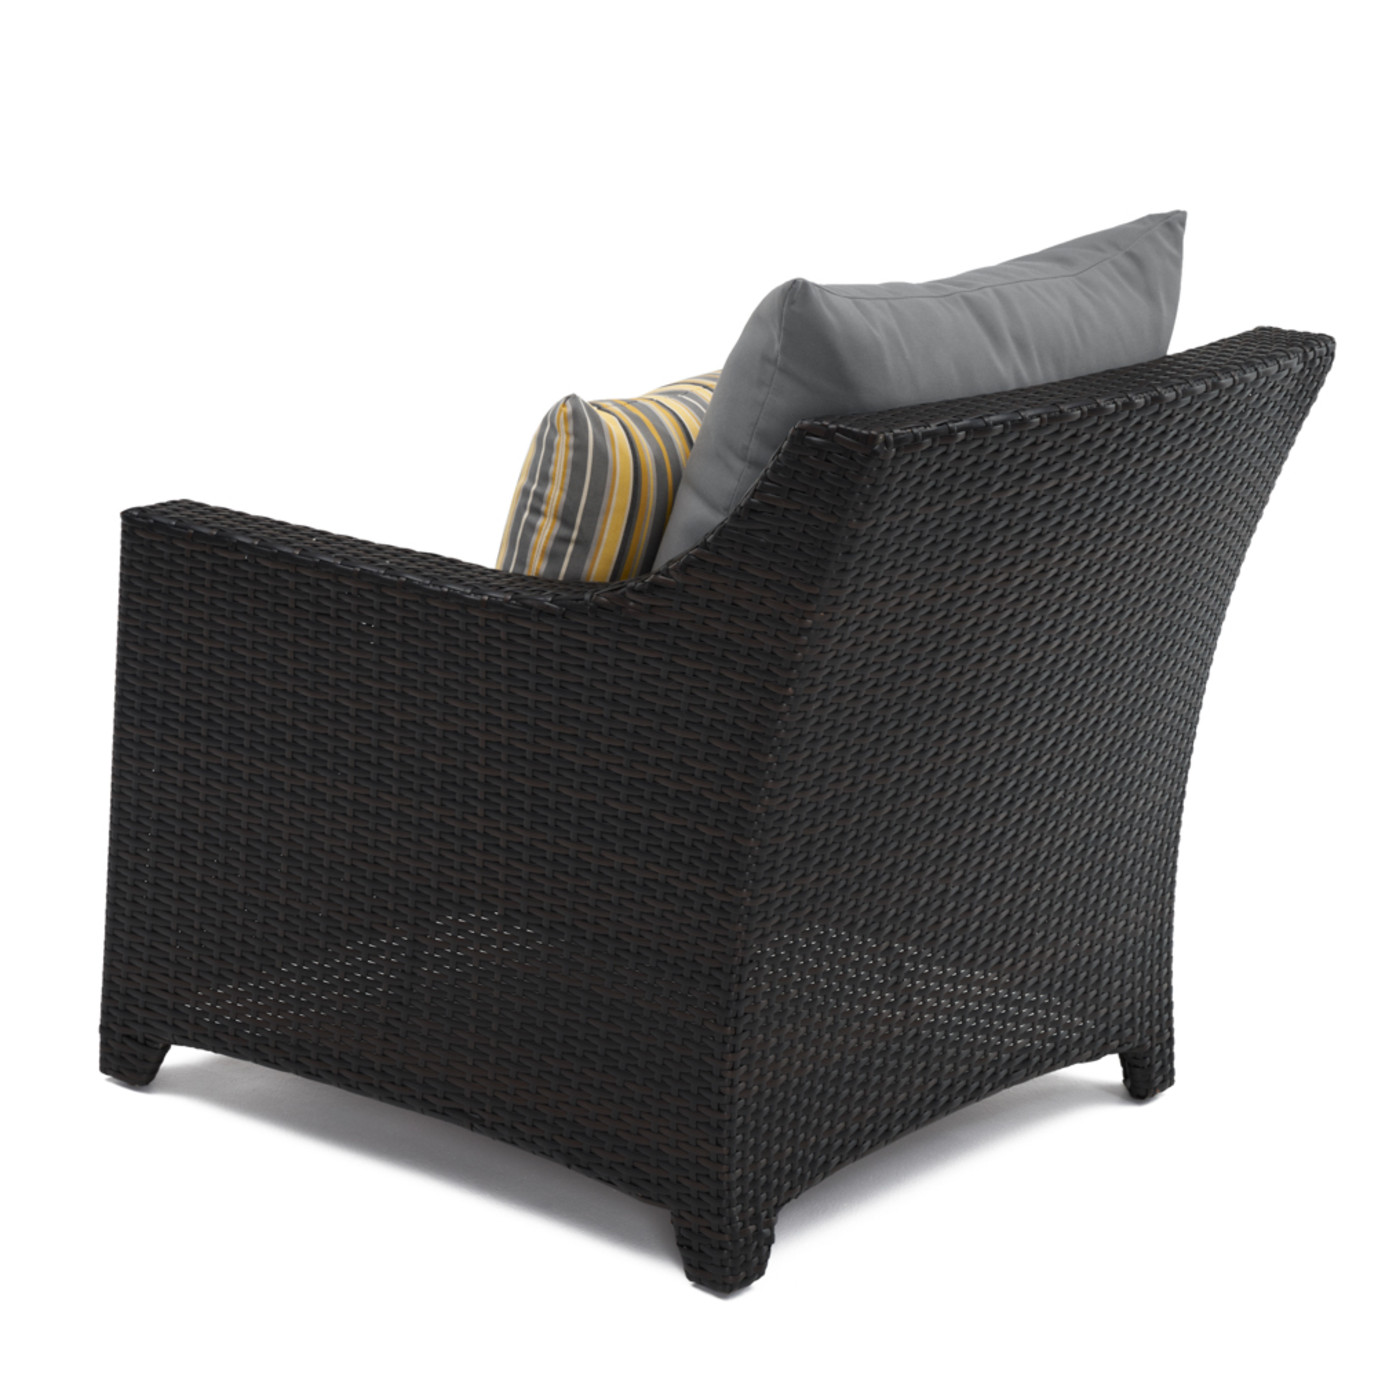 Deco™ 8pc Sofa Set with Furniture Covers - Charcoal Grey